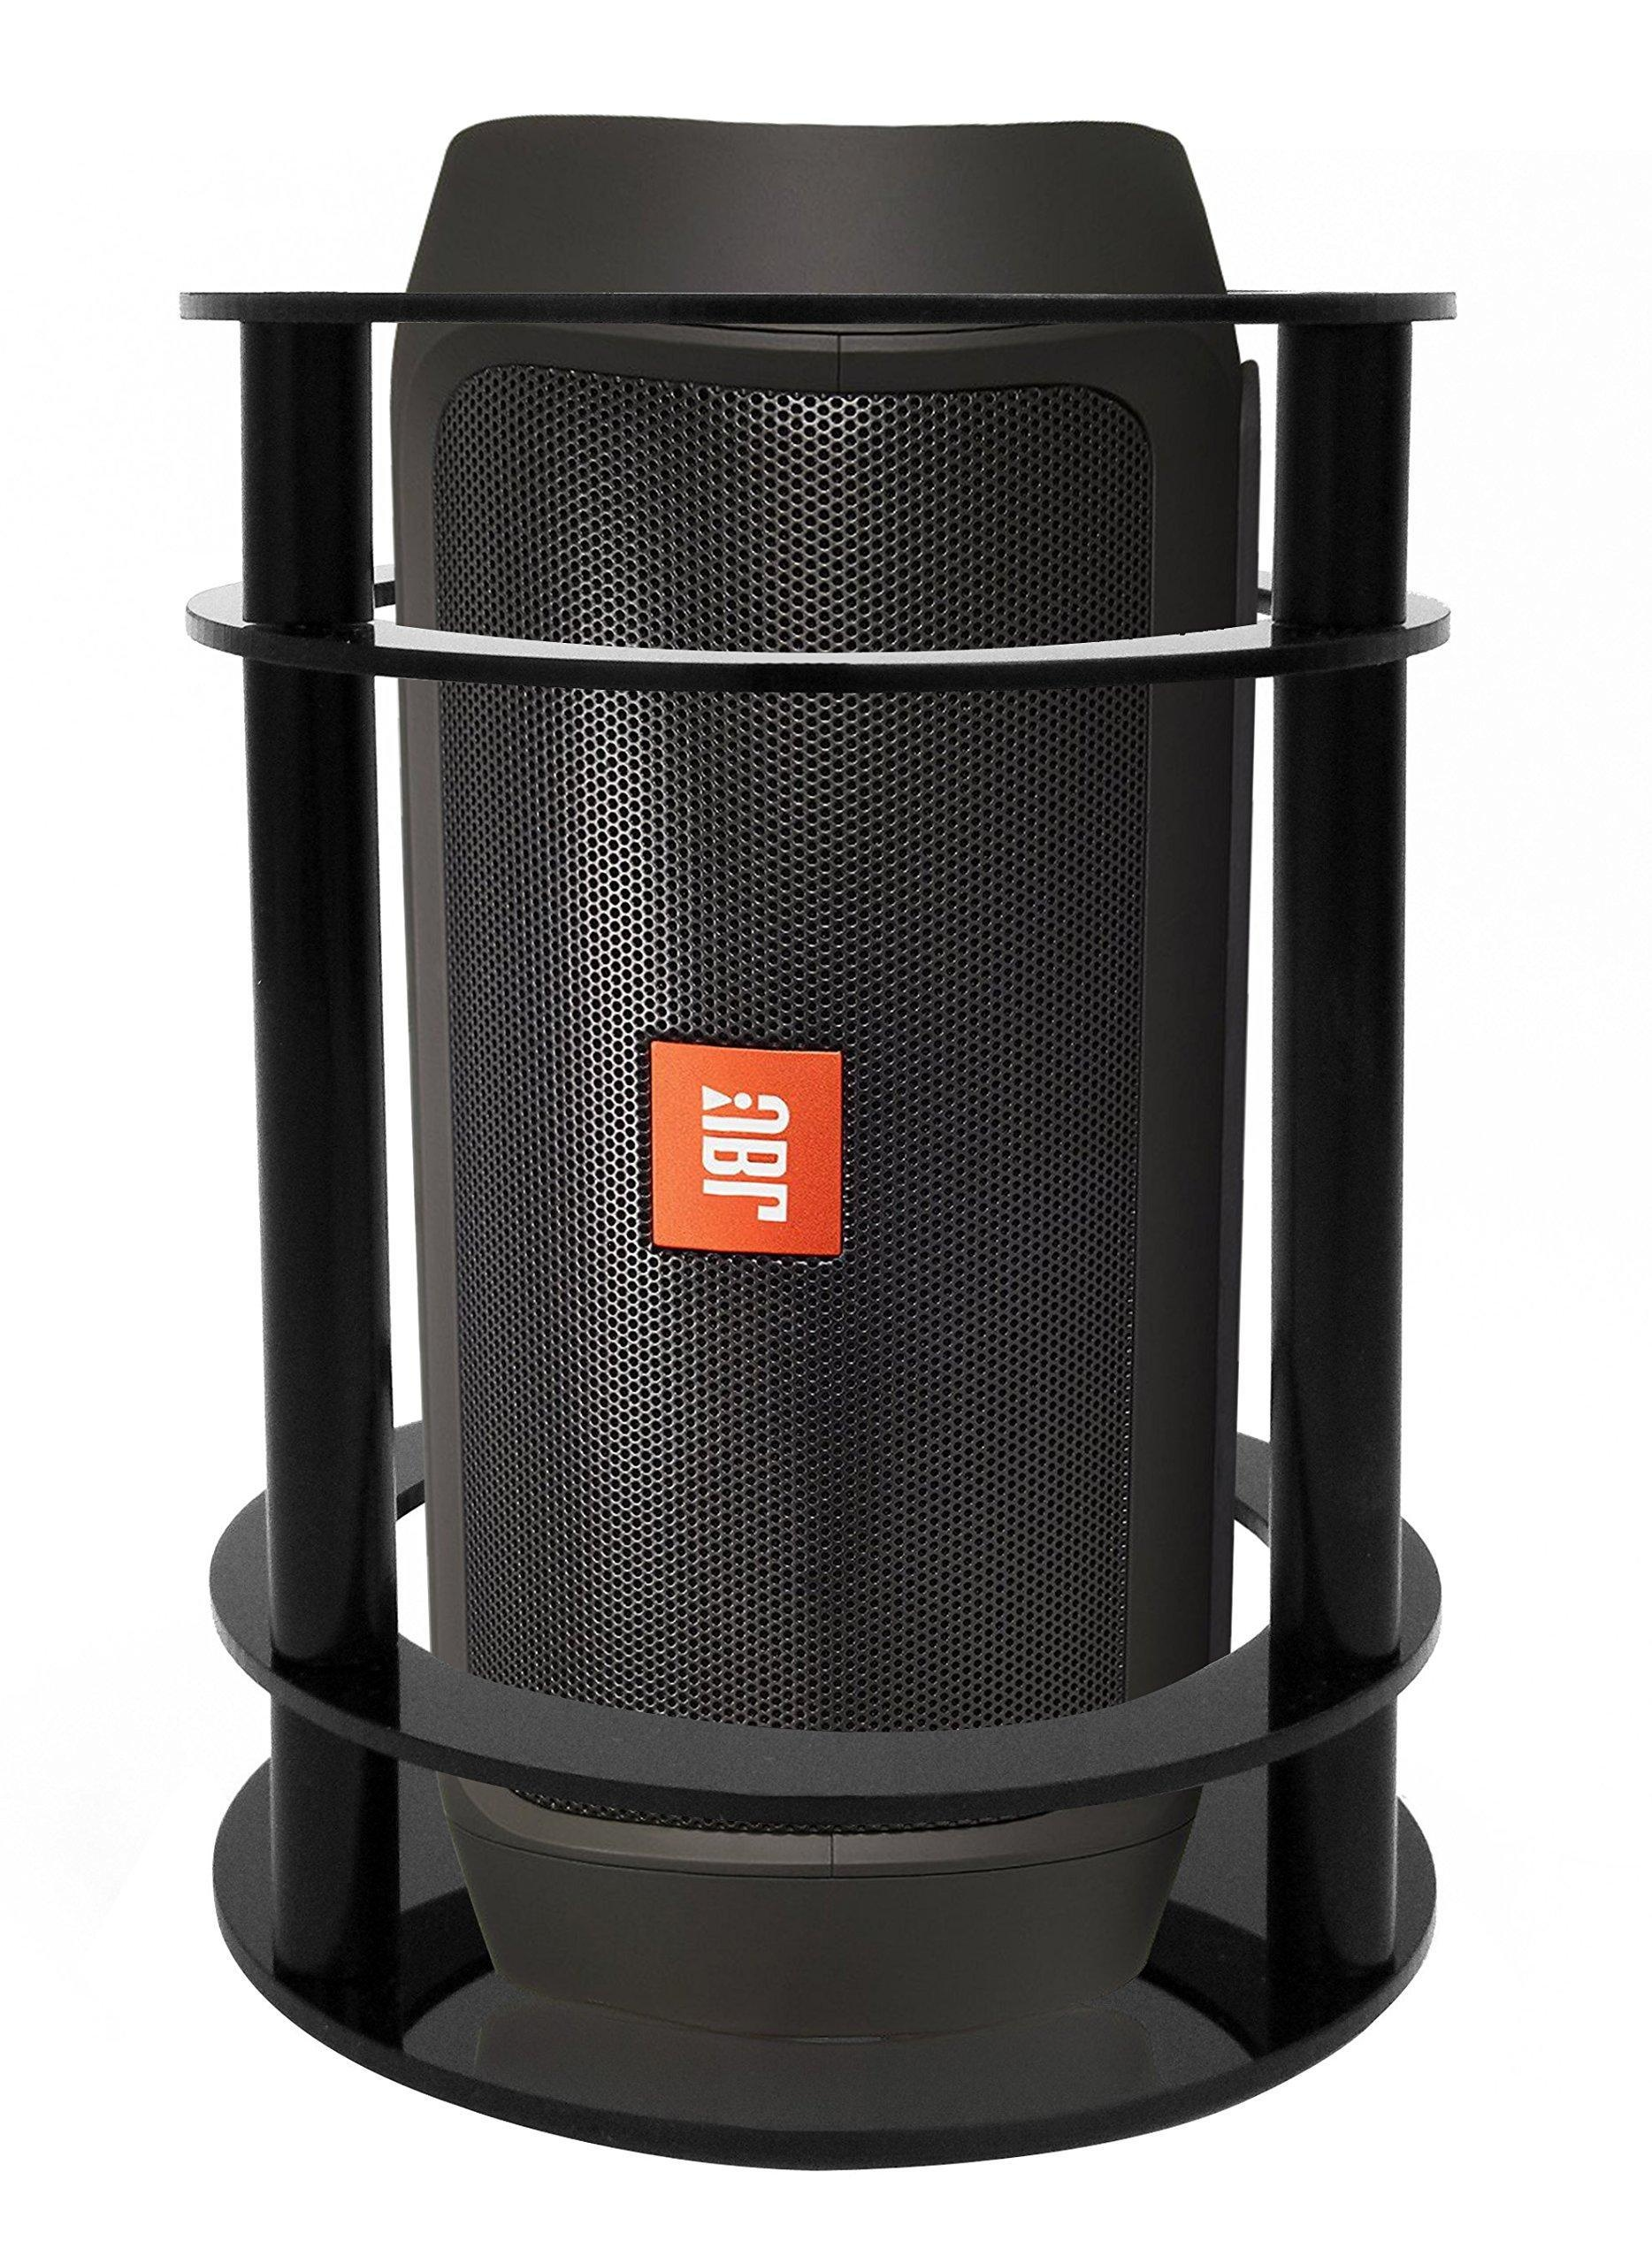 FitSand Speaker Stand Guard Station for JBL Charge 2+ Splashproof Portable Bluetooth Speaker - Enhanced Strength and Stability to Protect Alexa Boom Speaker (Black)